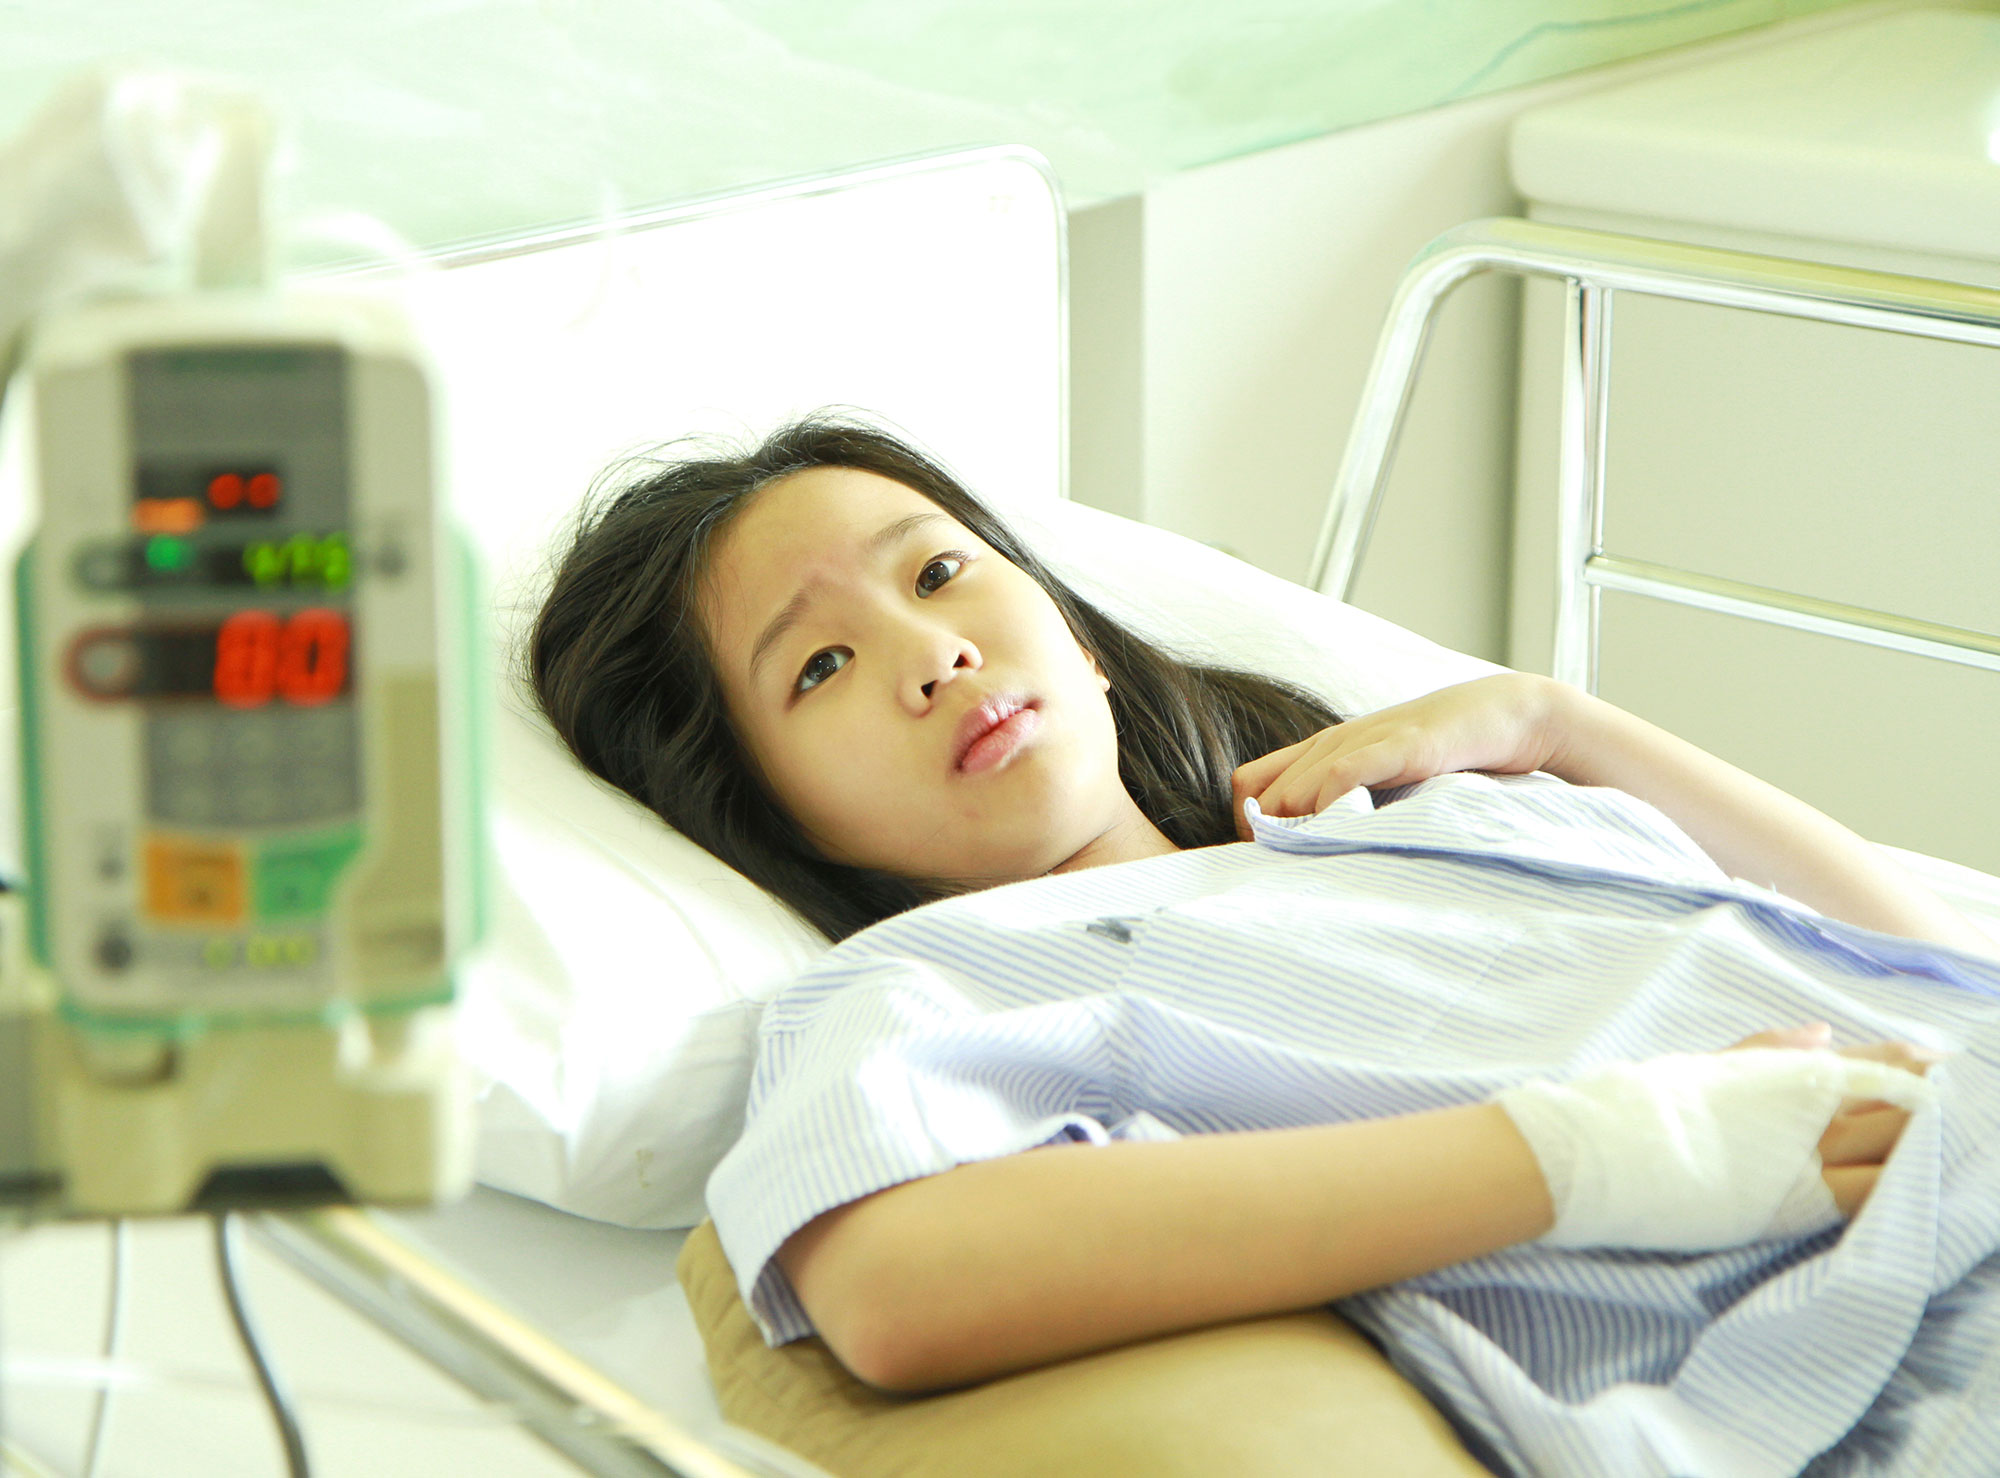 Kids can be traumatised by hospital stays research shows